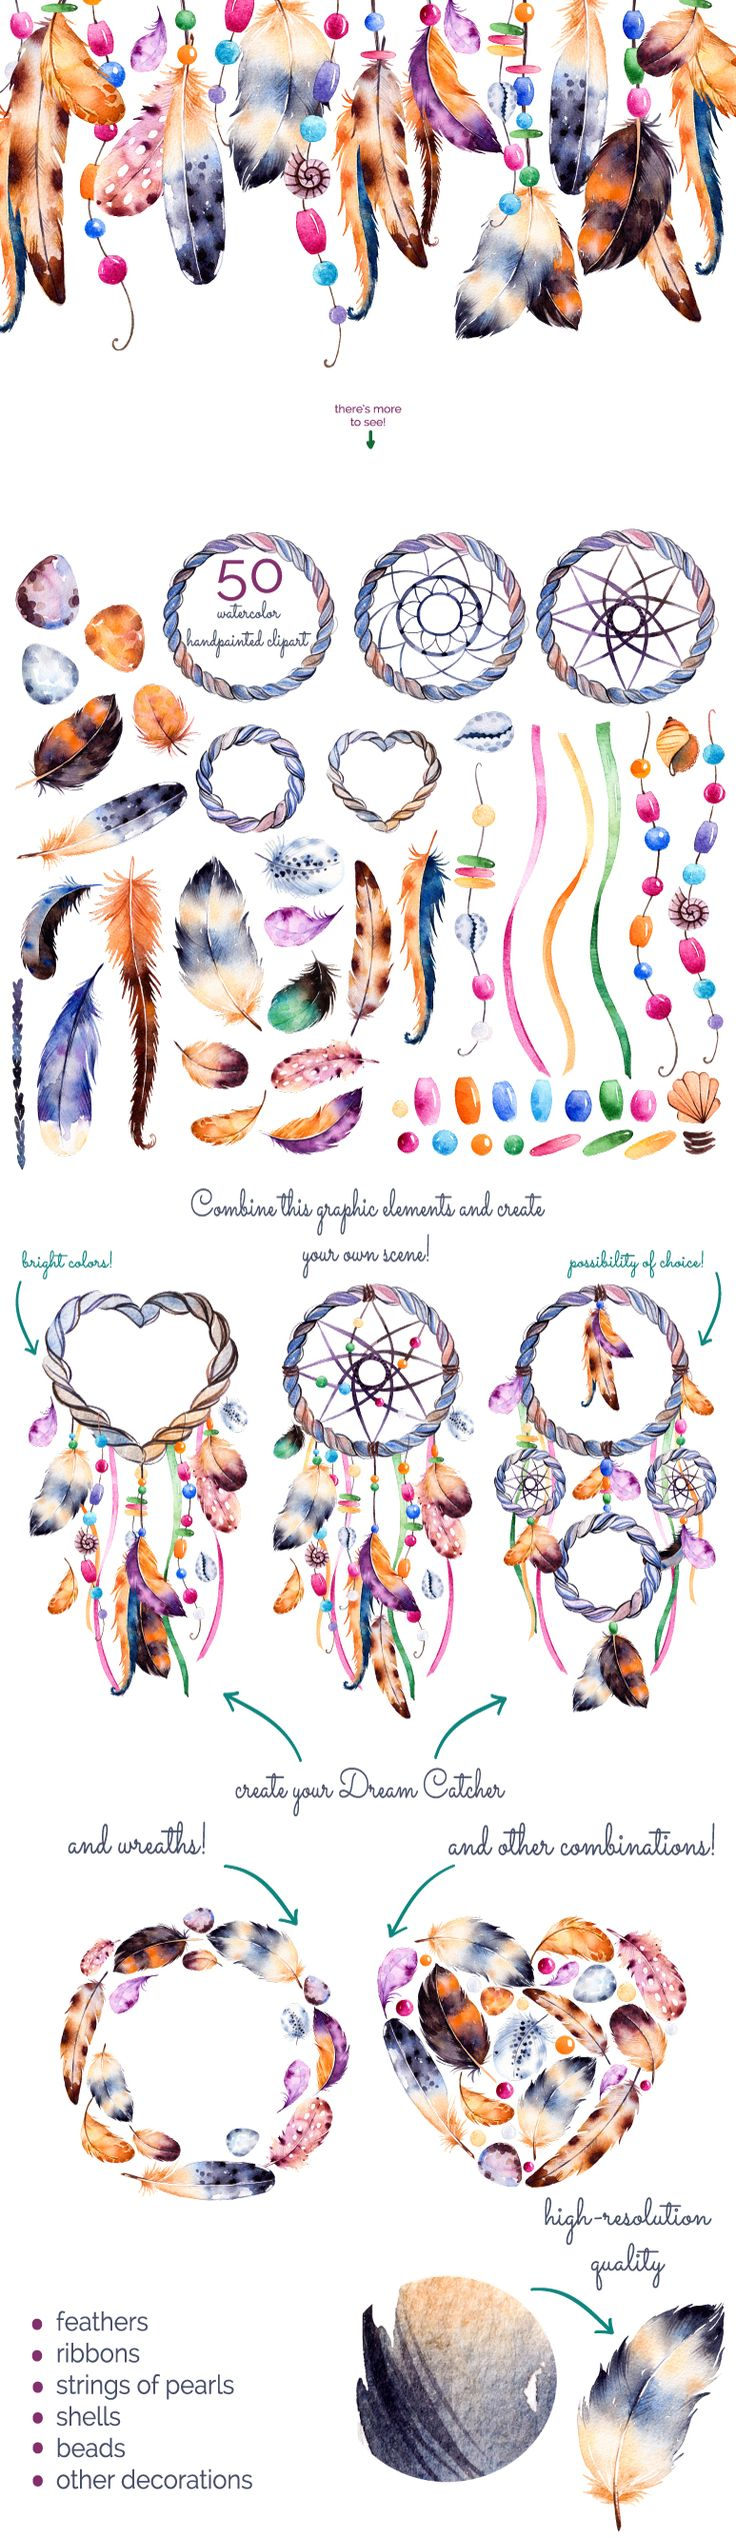 Feathers and dream catchers by Kate_Rina on @creativemarket